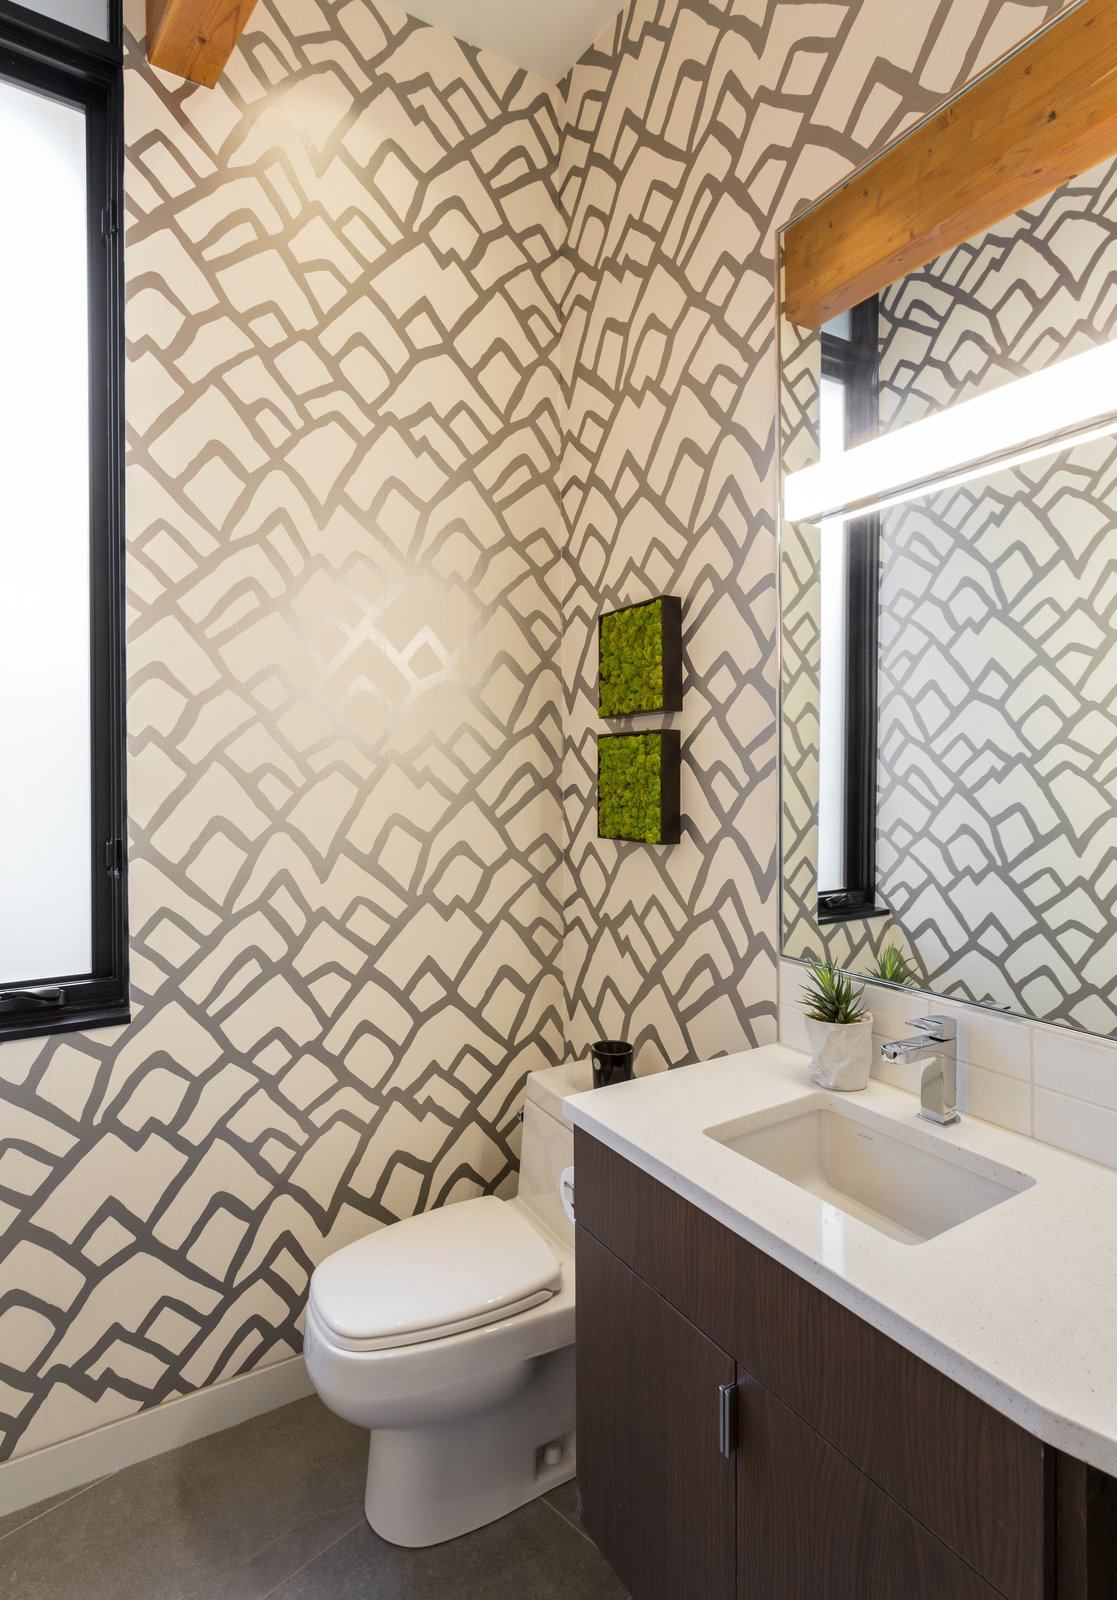 Bath Room, Ceiling Lighting, Wall Lighting, Engineered Quartz Counter, Undermount Sink, Ceramic Tile Wall, One Piece Toilet, Porcelain Tile Floor, Recessed Lighting, Subway Tile Wall, and Accent Lighting Upstairs powder room  The Greenhills House